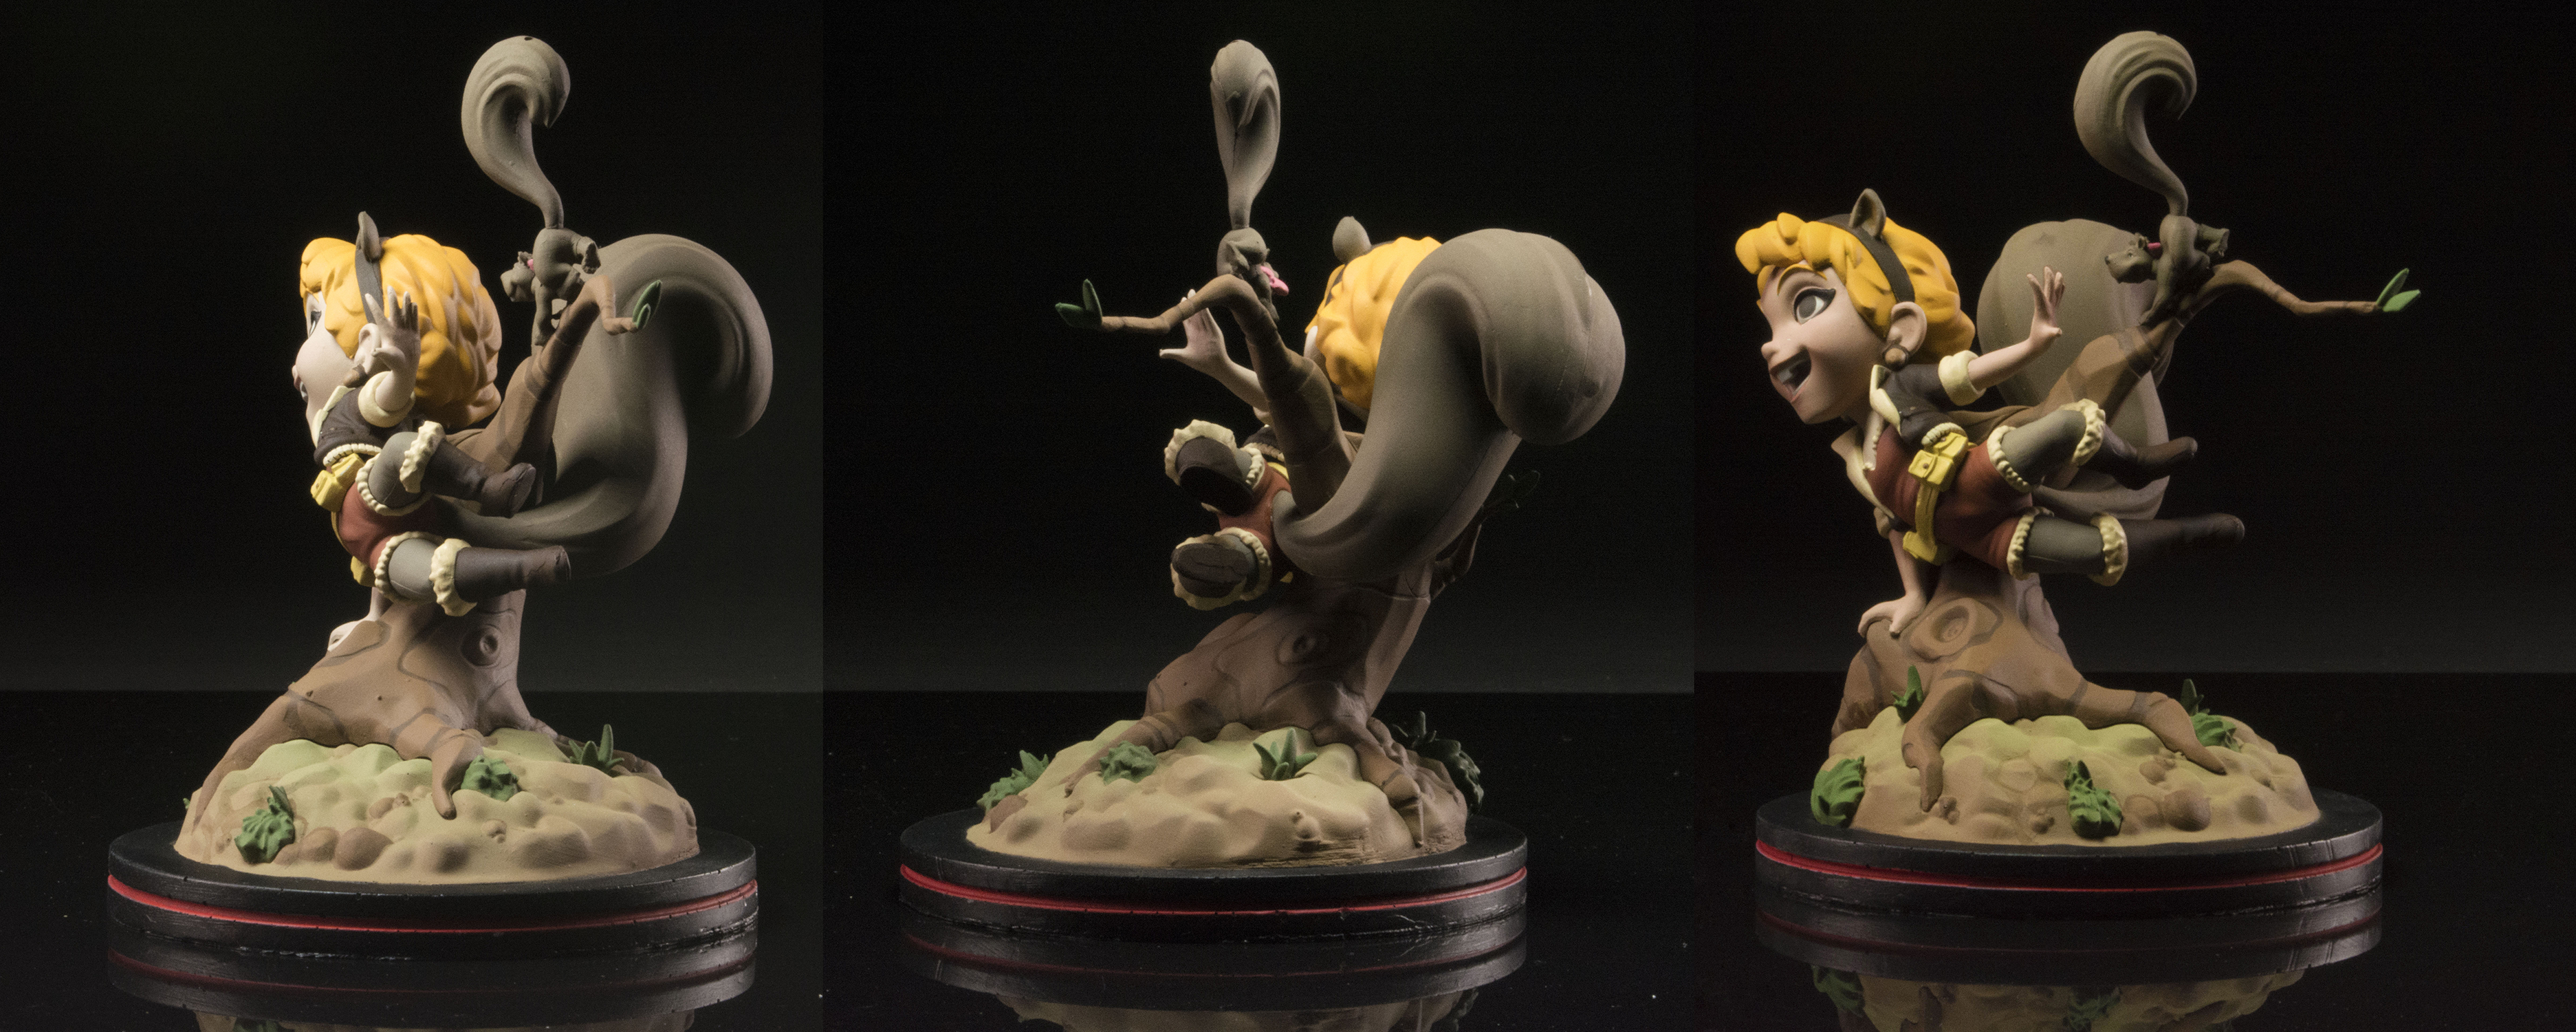 MARVEL SQUIRREL GIRL Q-FIG DIORAMA FIGURE